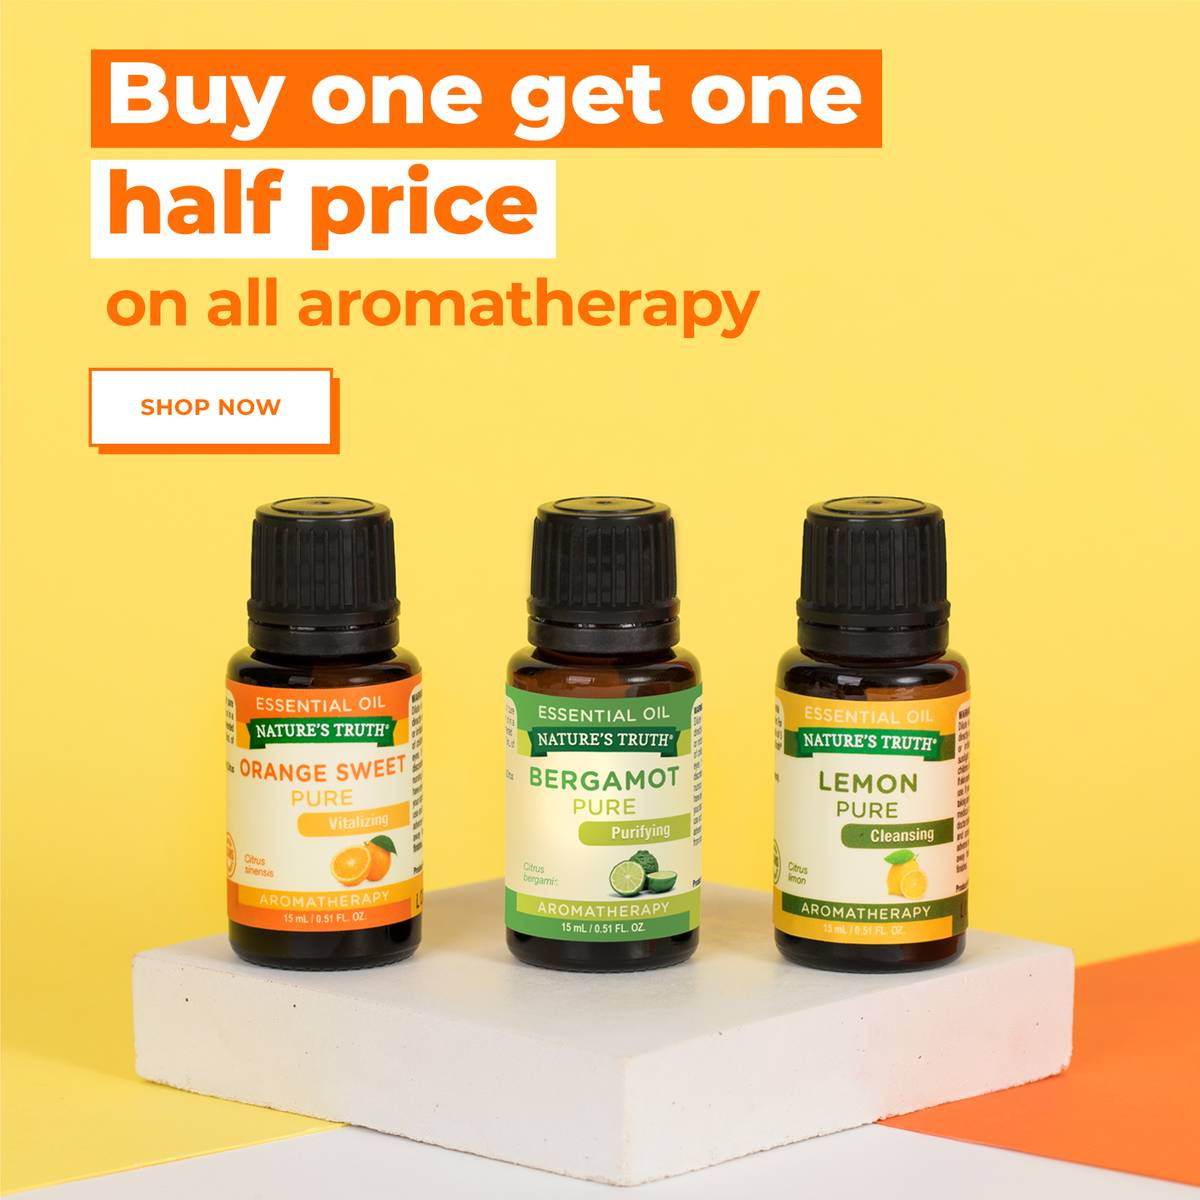 BUY ONE GET HALF PRICE ON ALL AROMATHERAPY